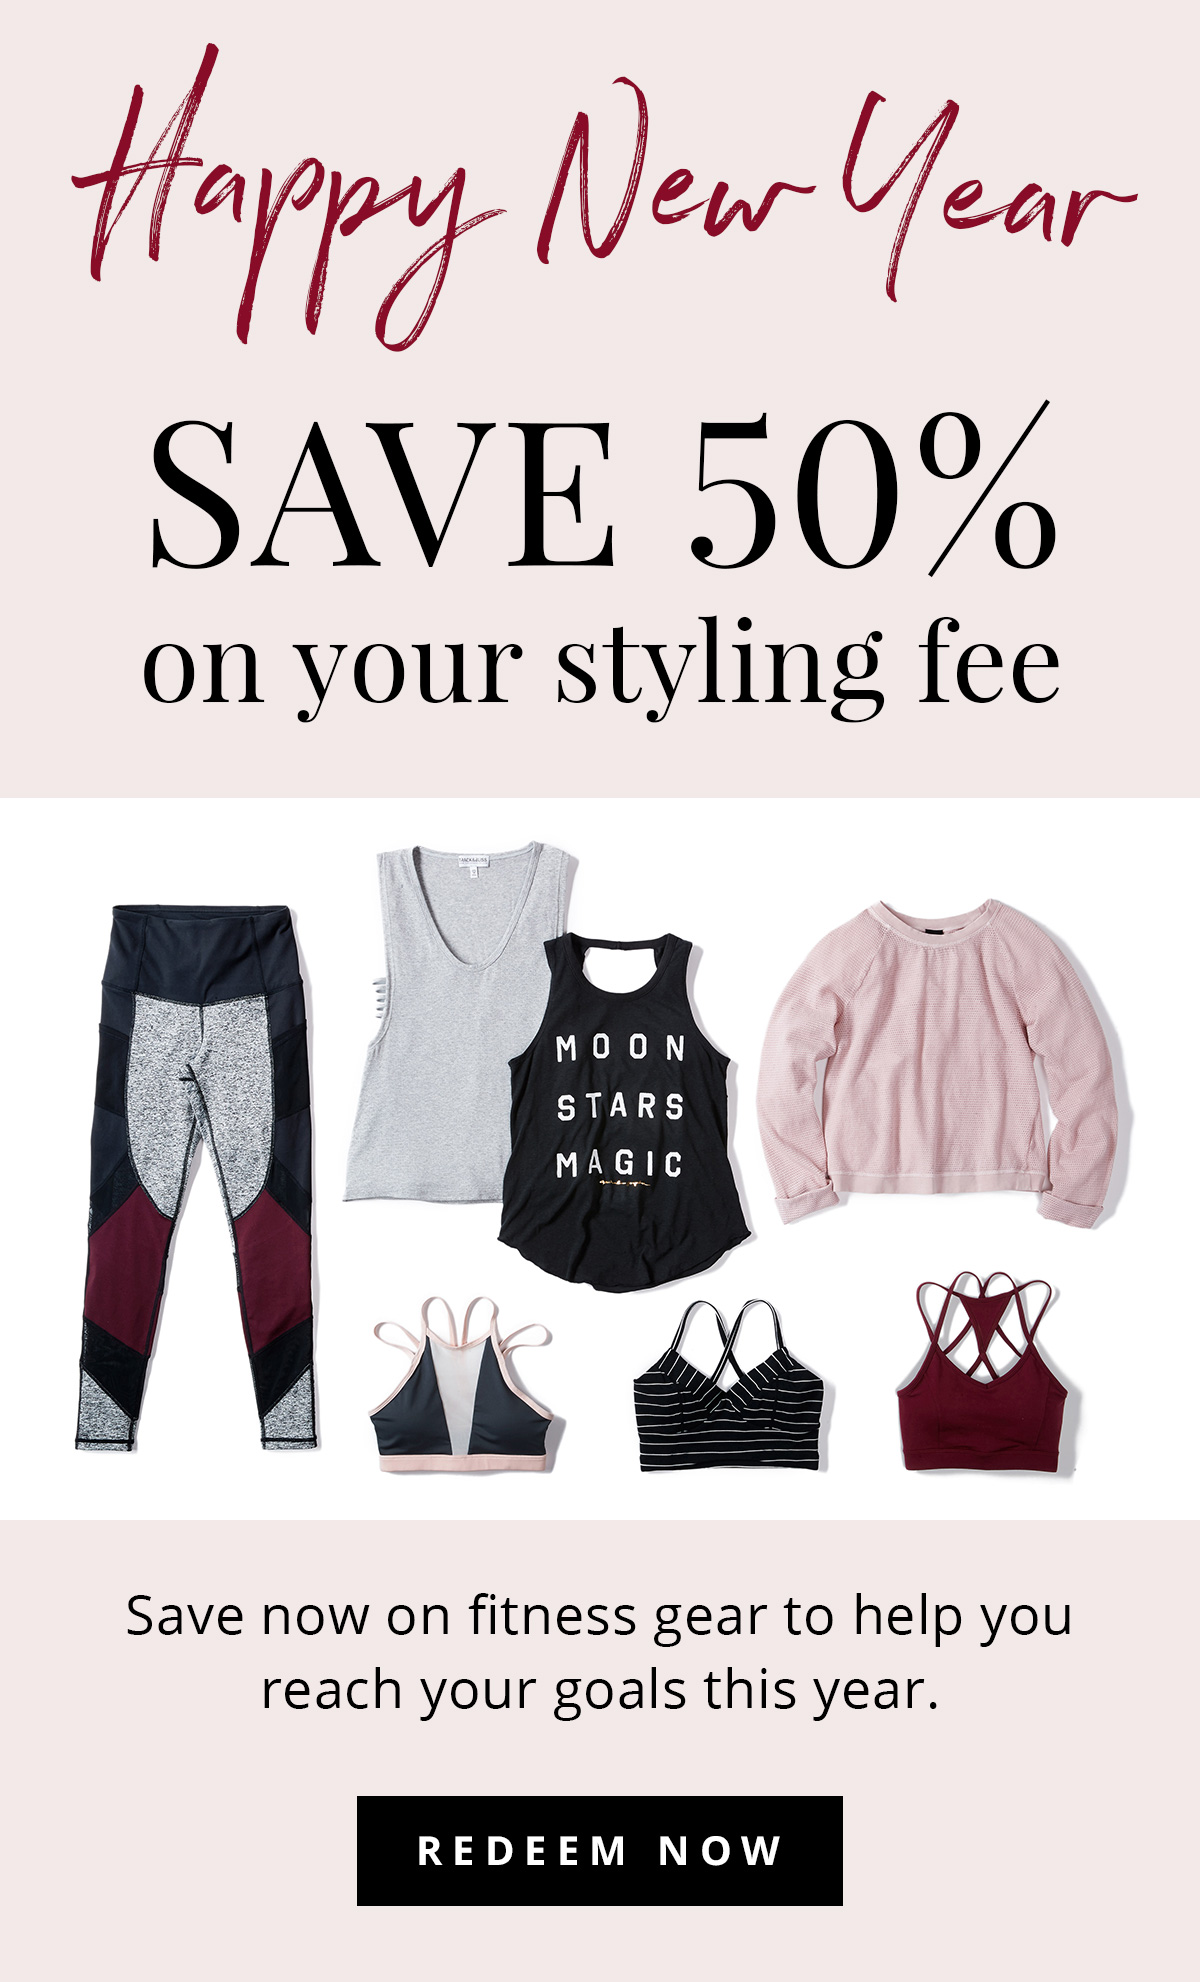 Happy New Year. SAVE 50% on your styling fee. Save now on fitness gear to help you reach your goals this year. REDEEM NOW.